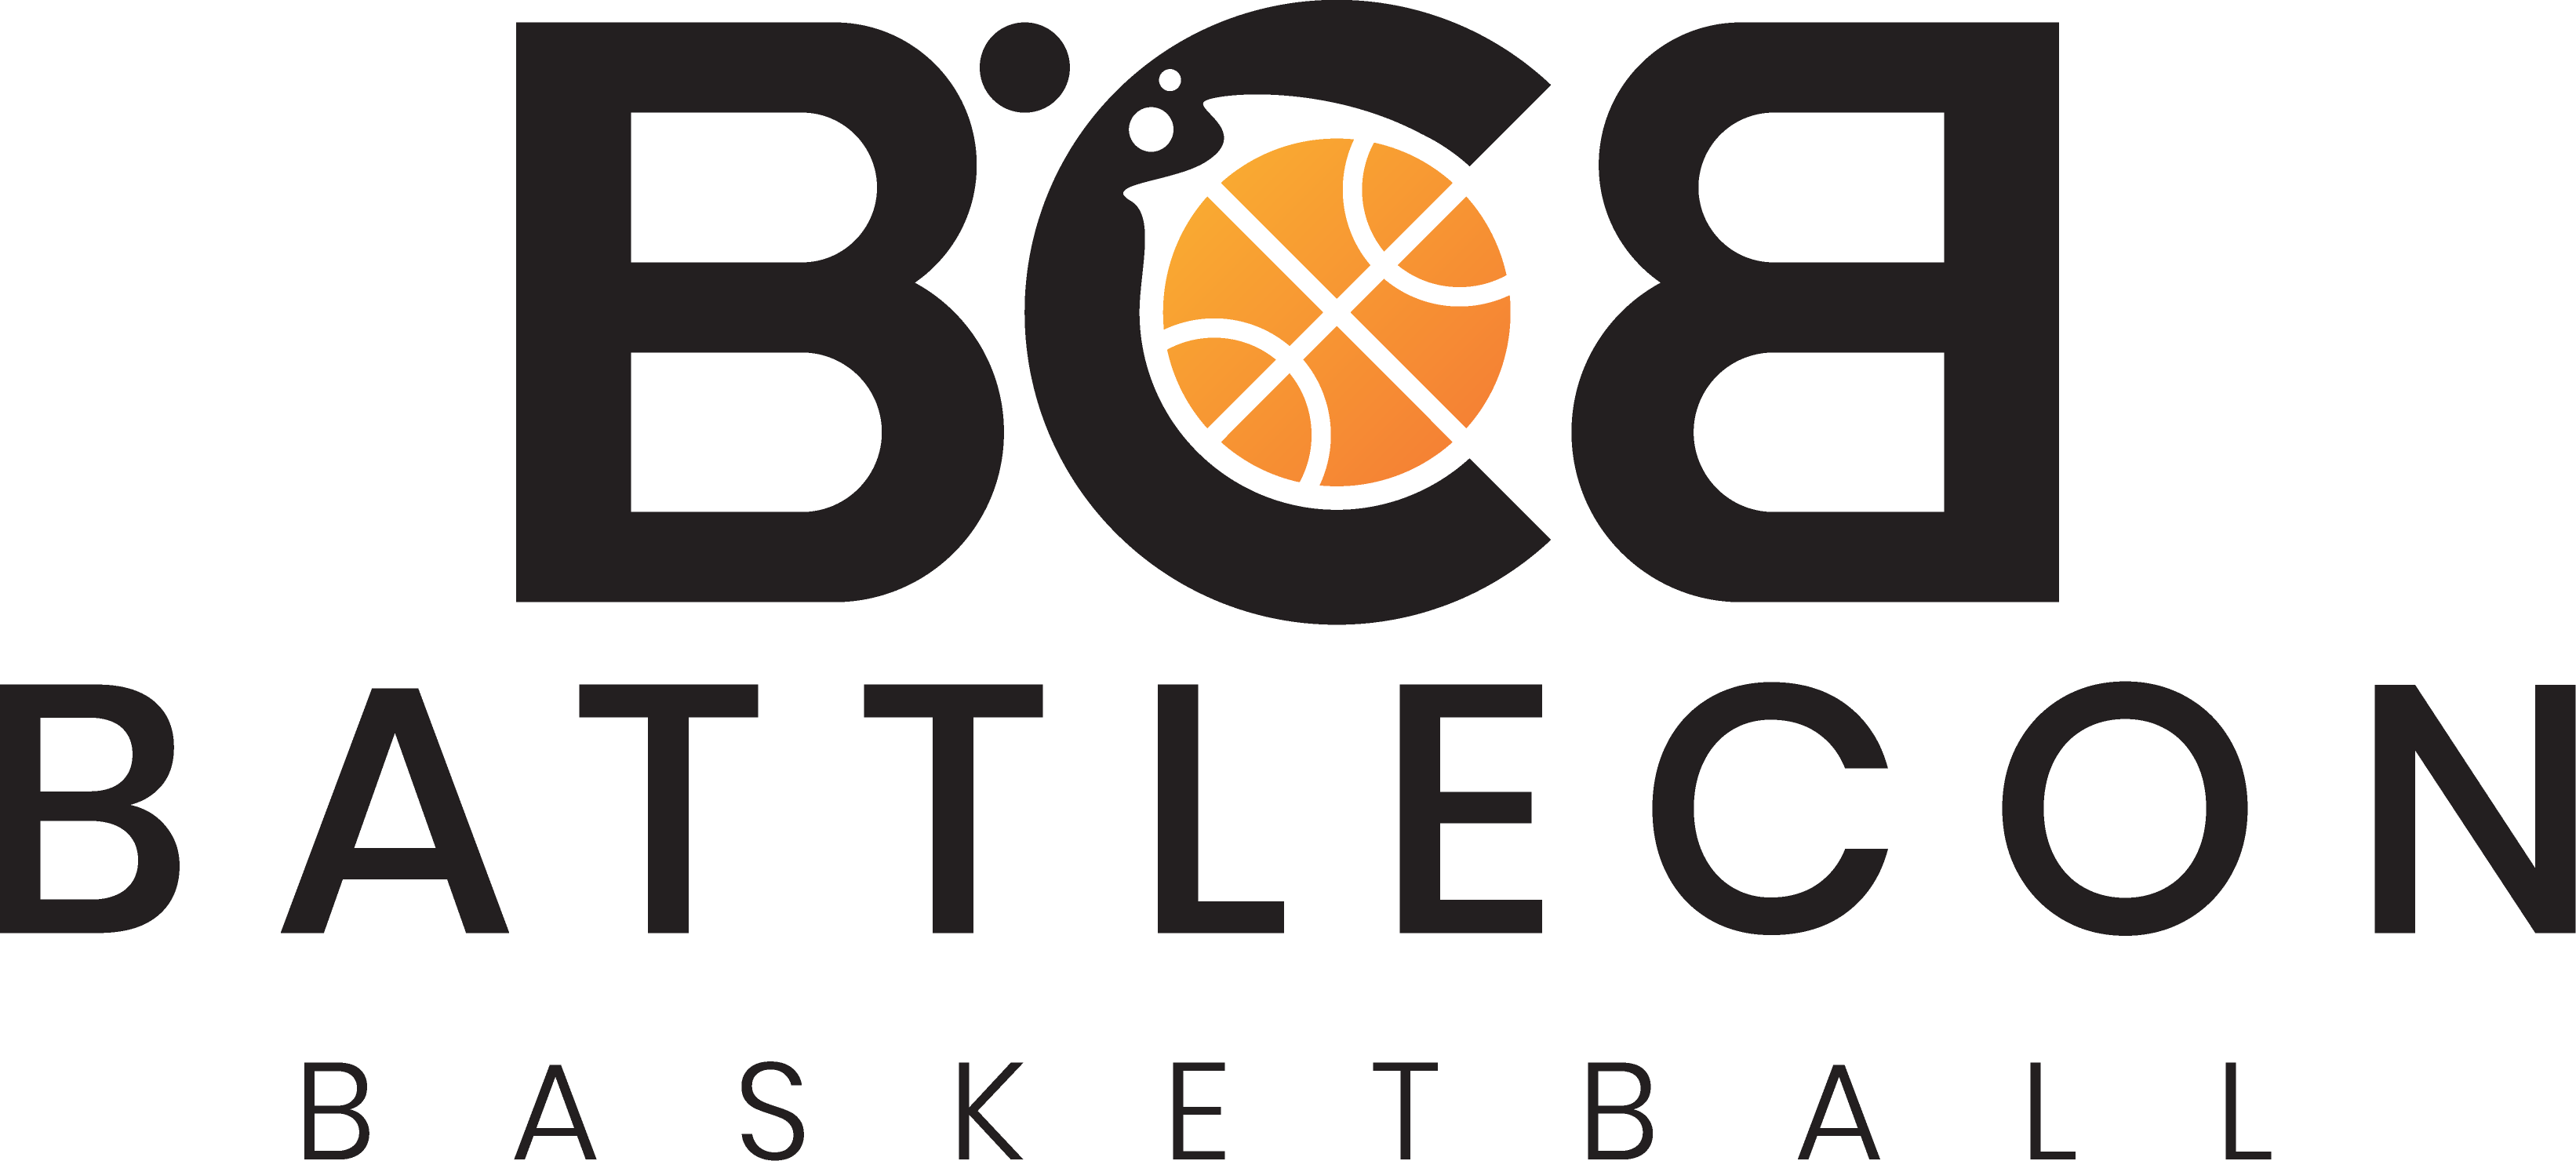 BattleCon Basketball